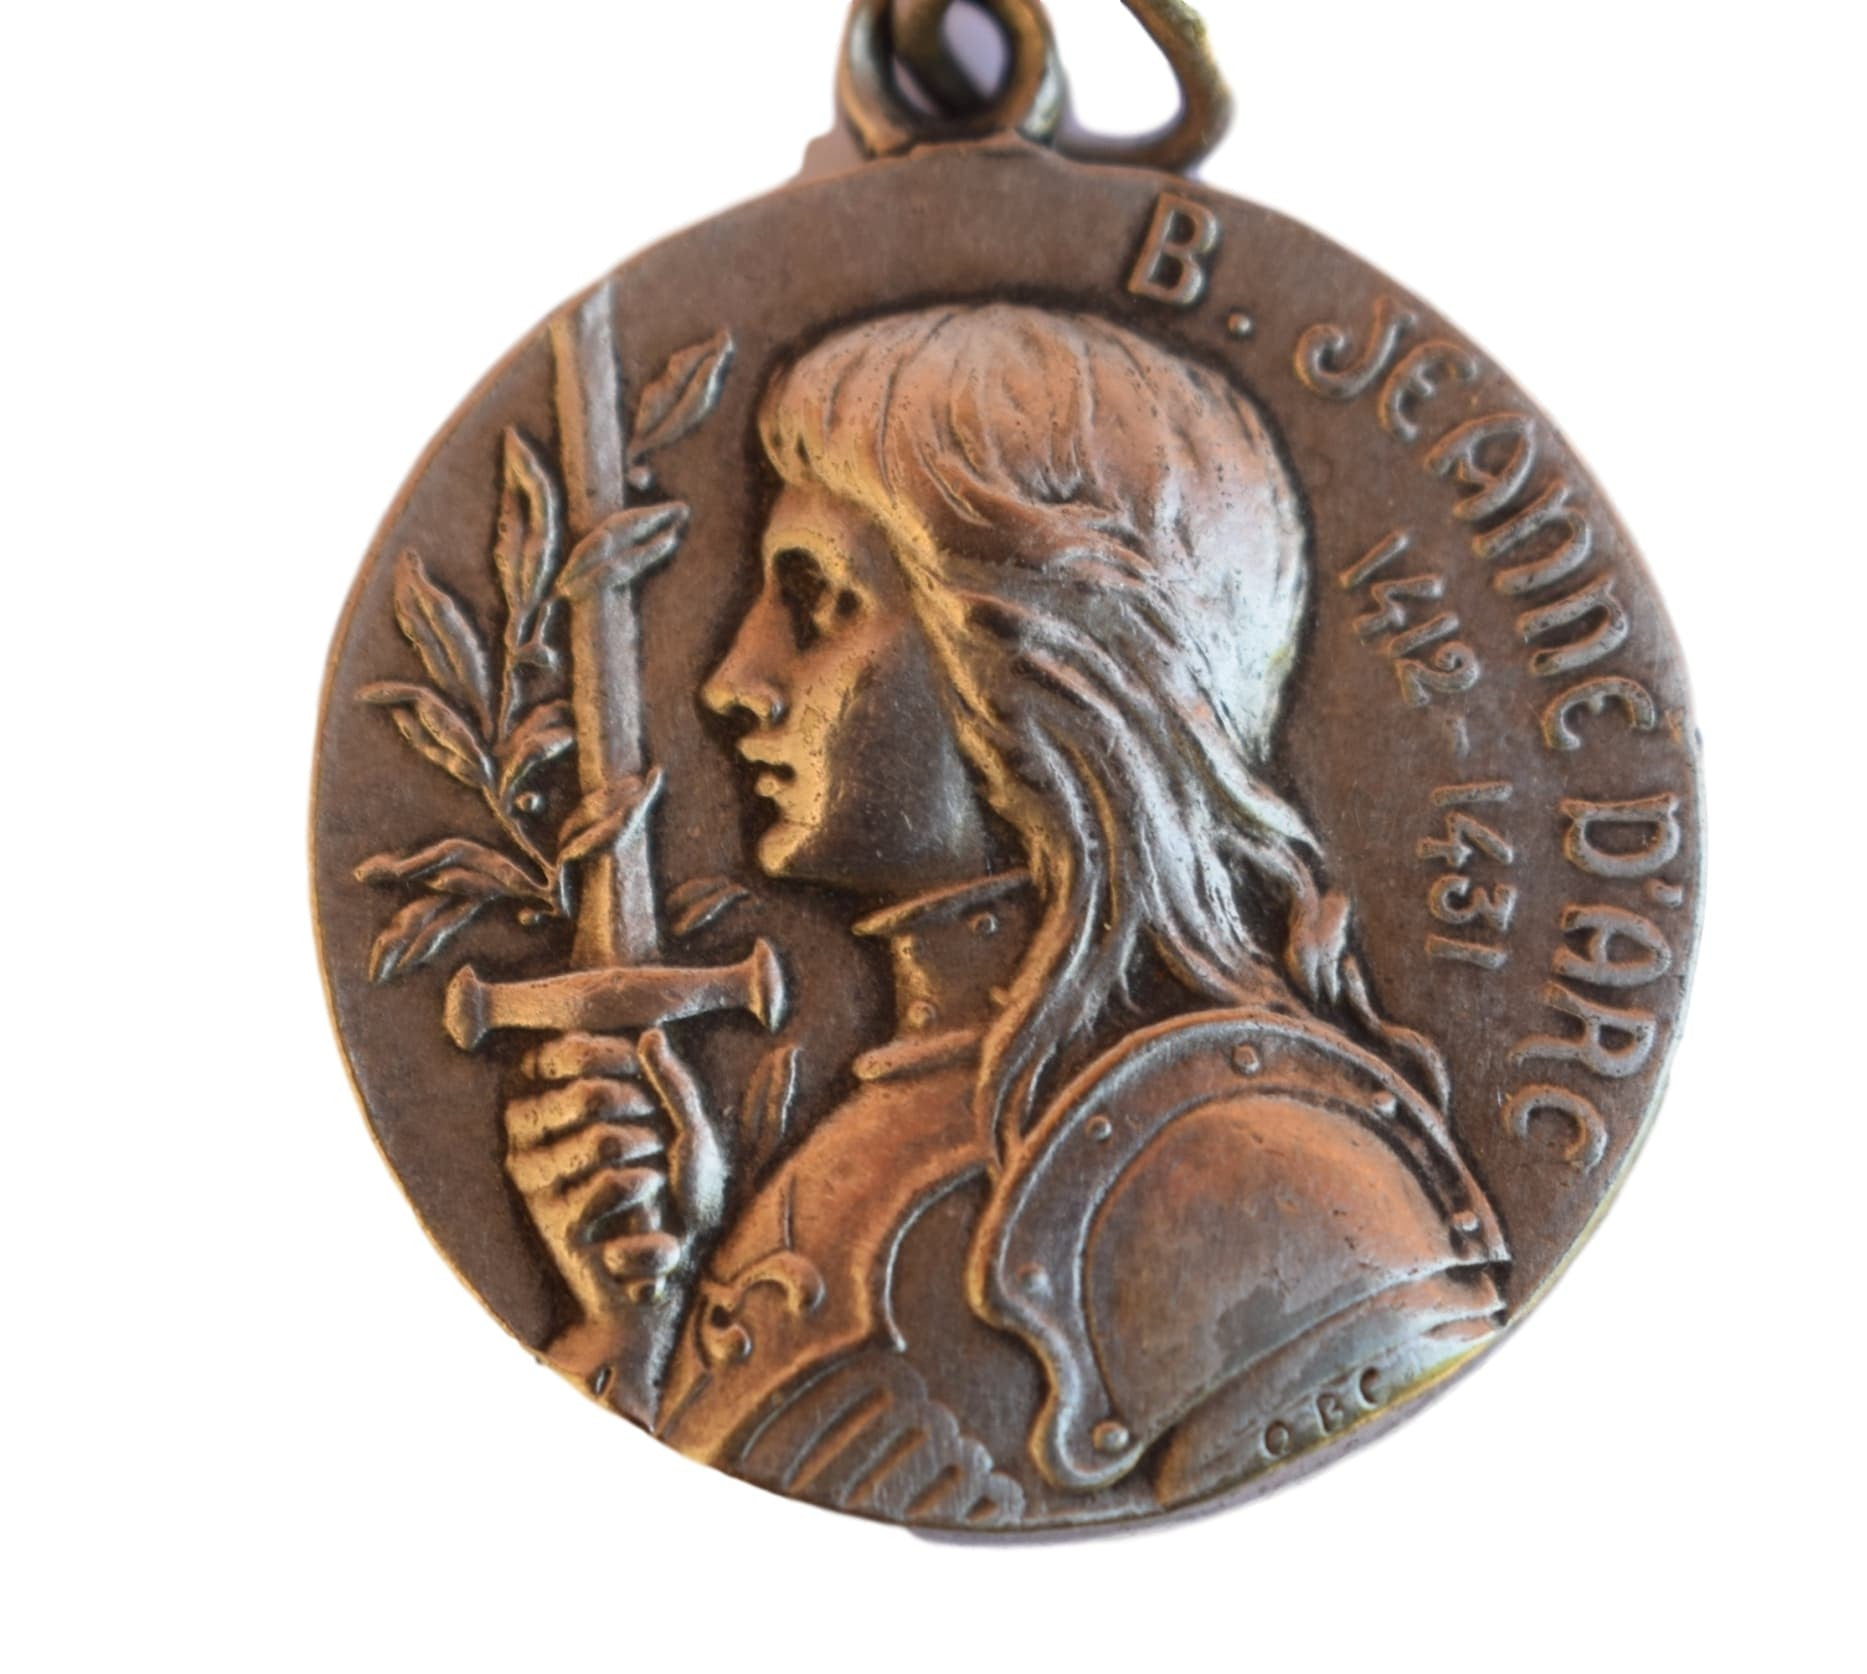 Rare Large Saint Joan of Arc Medal - Charmantiques